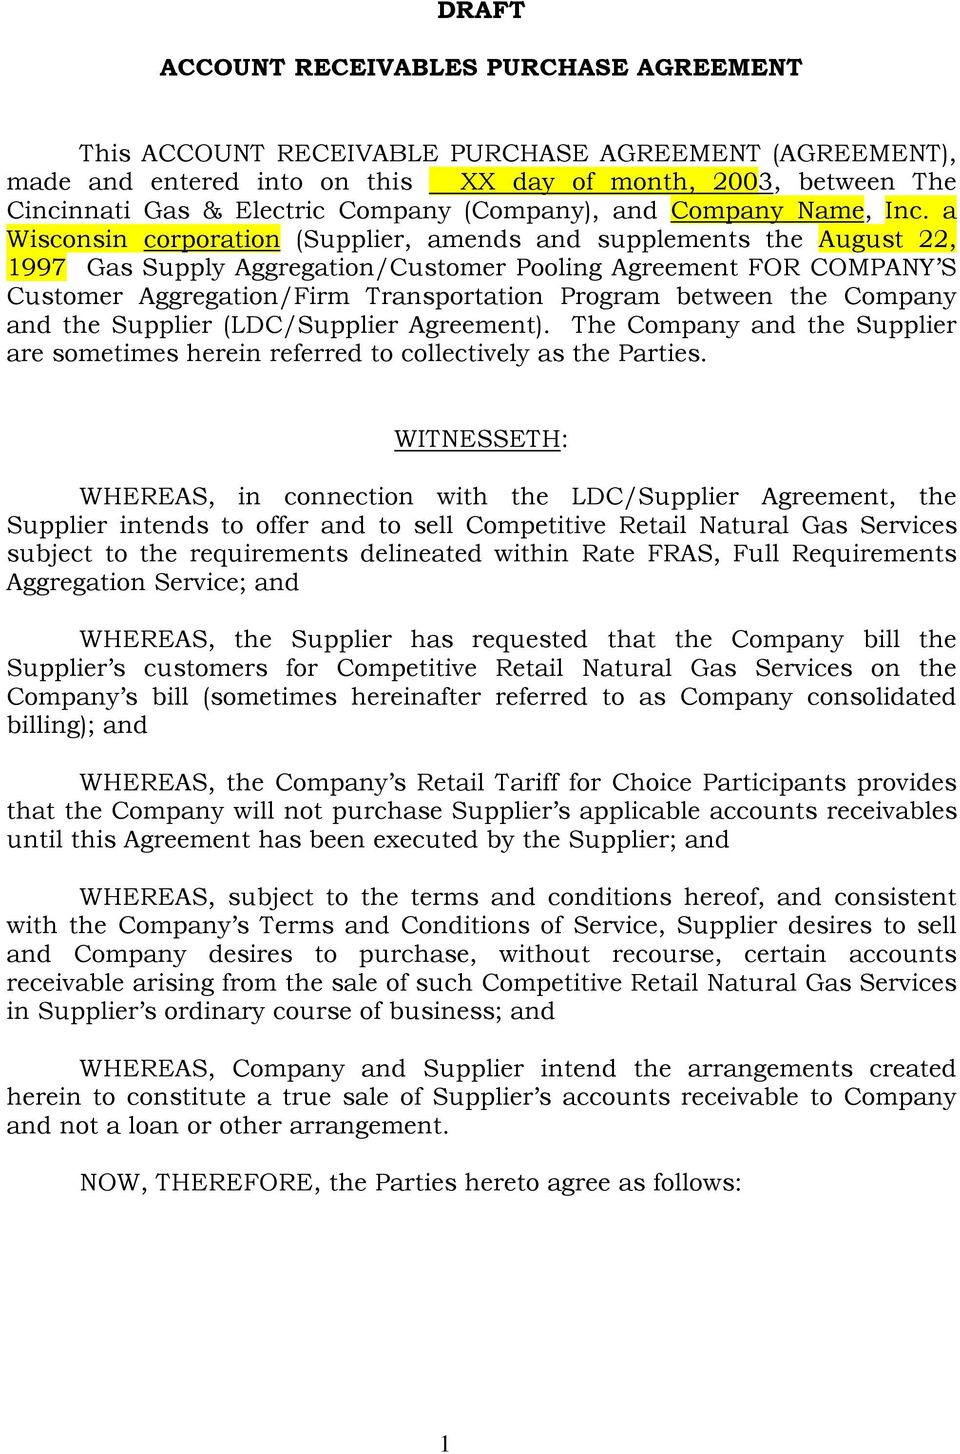 a Wisconsin corporation (Supplier, amends and supplements the August 22, 1997 Gas Supply Aggregation/Customer Pooling Agreement FOR COMPANY S Customer Aggregation/Firm Transportation Program between